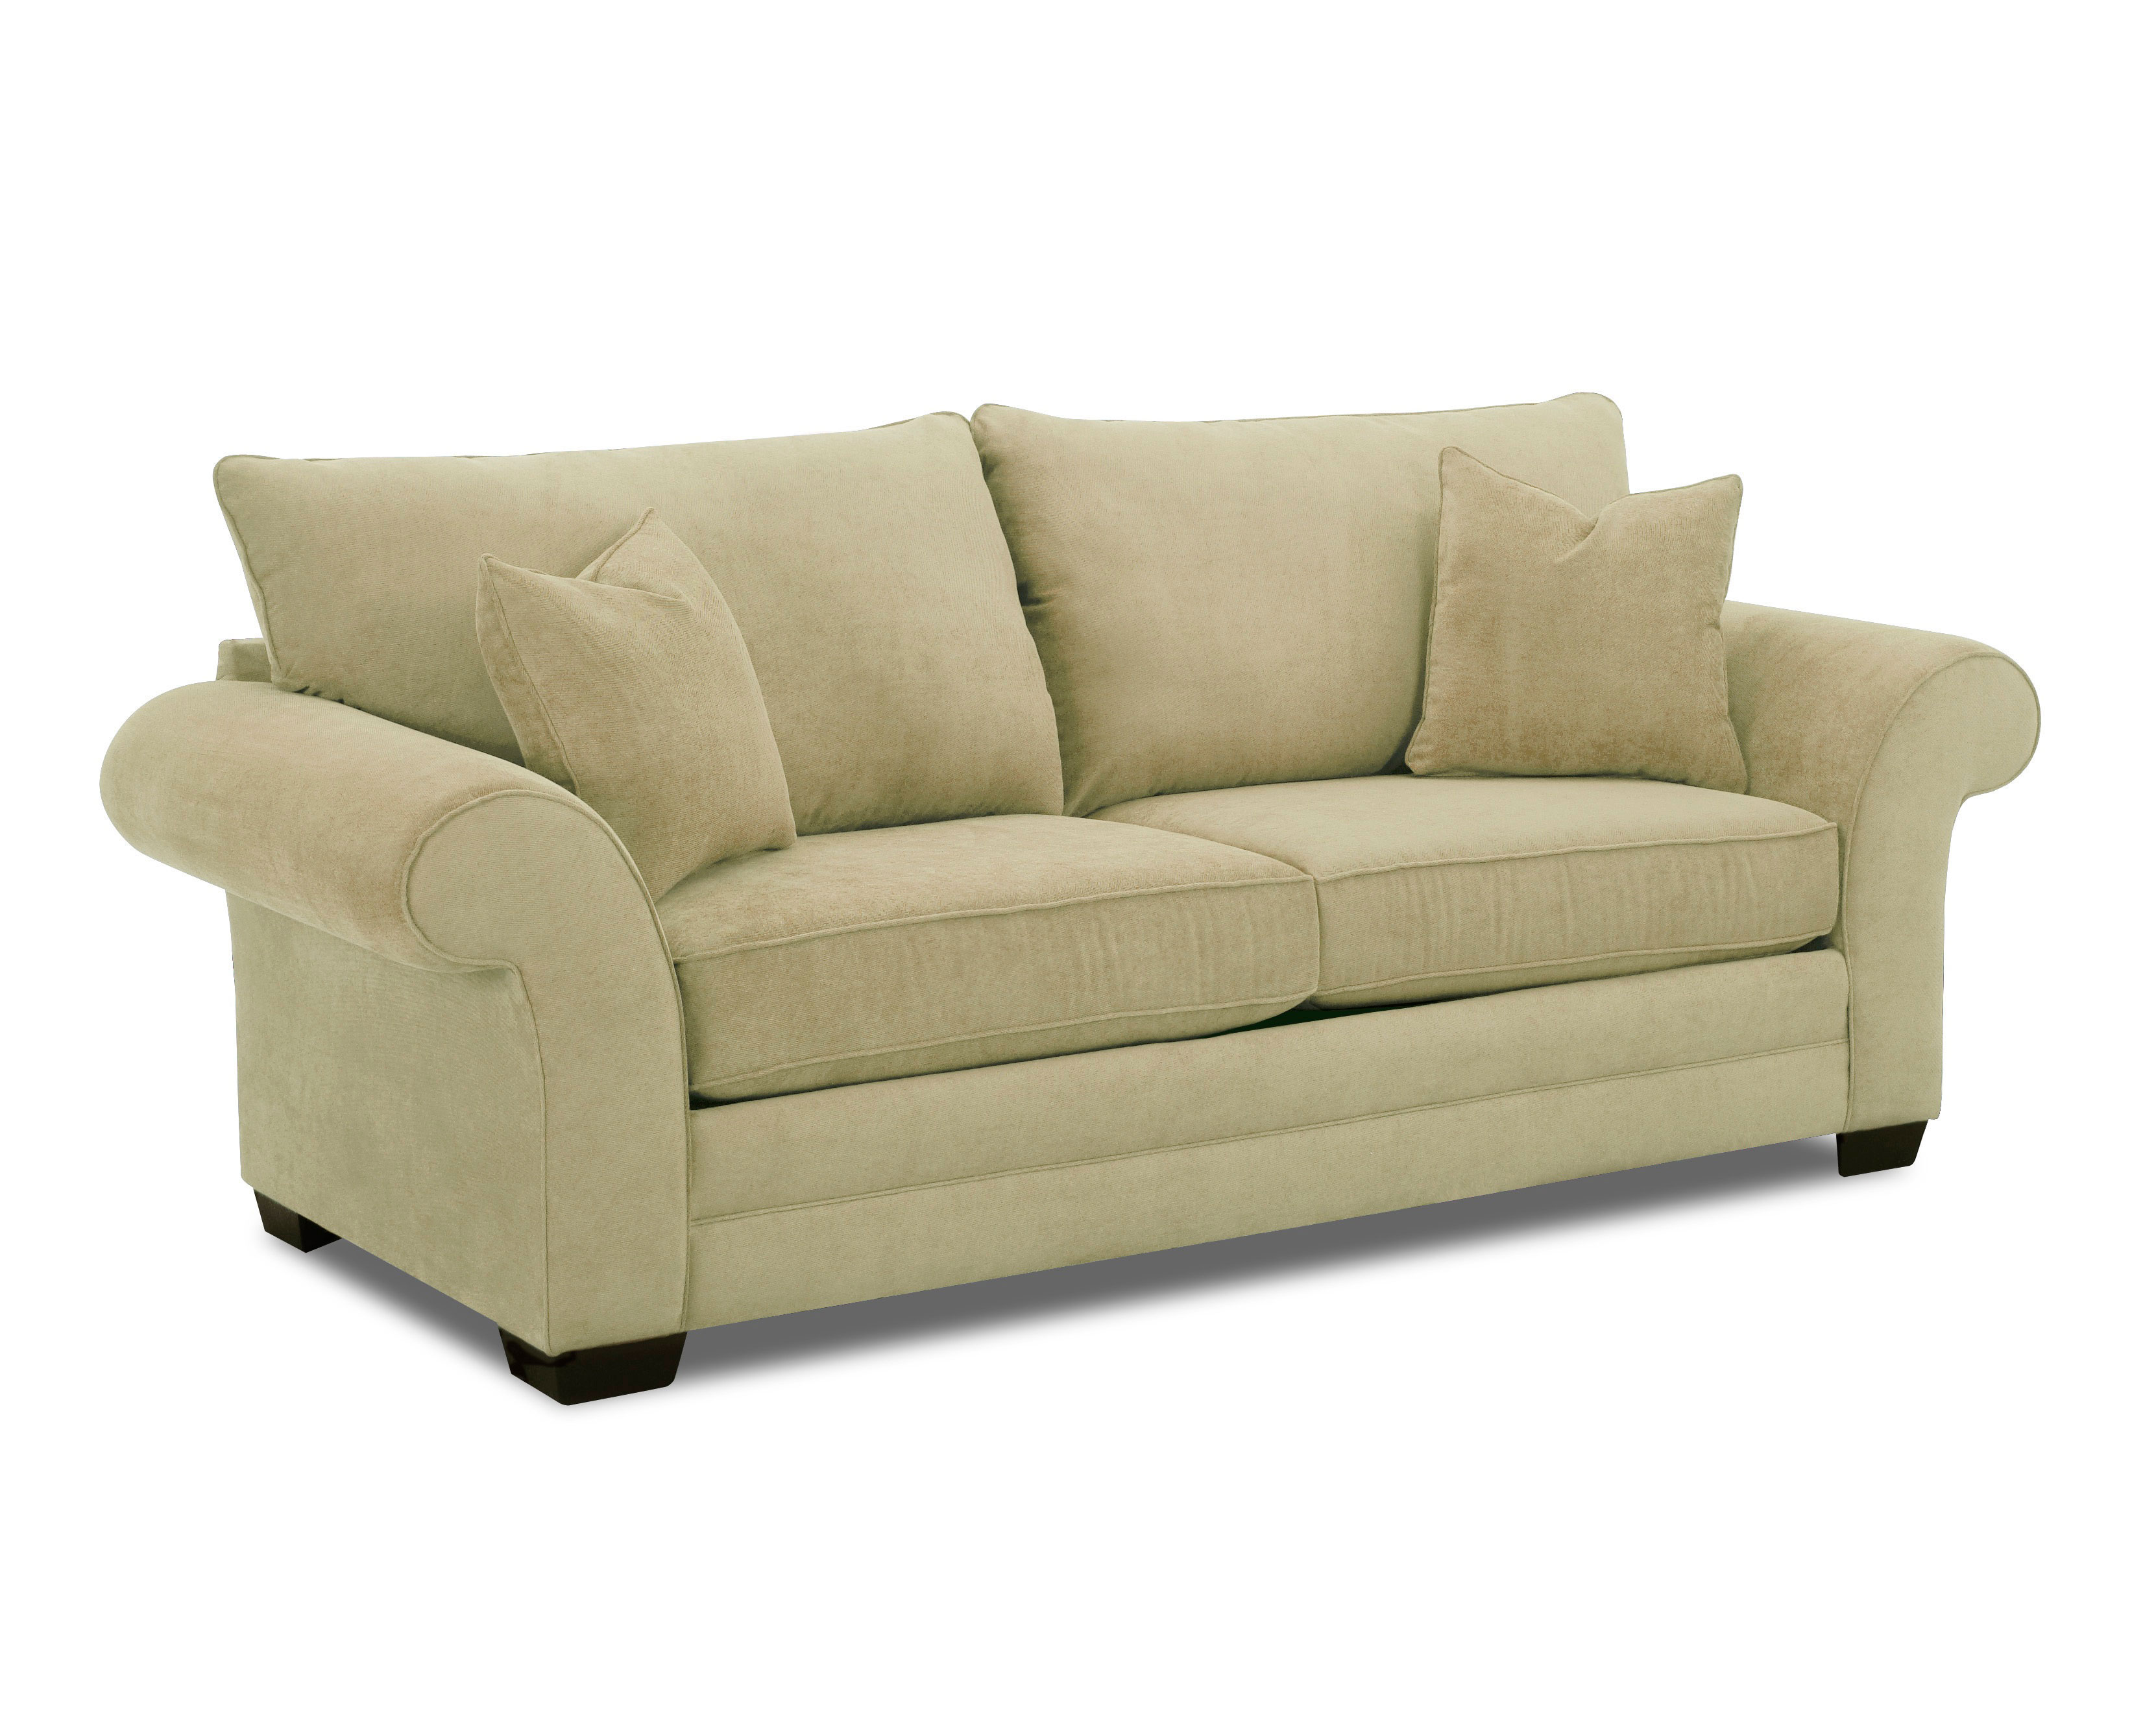 cool craigslist leather sofa design-Best Craigslist Leather sofa Collection